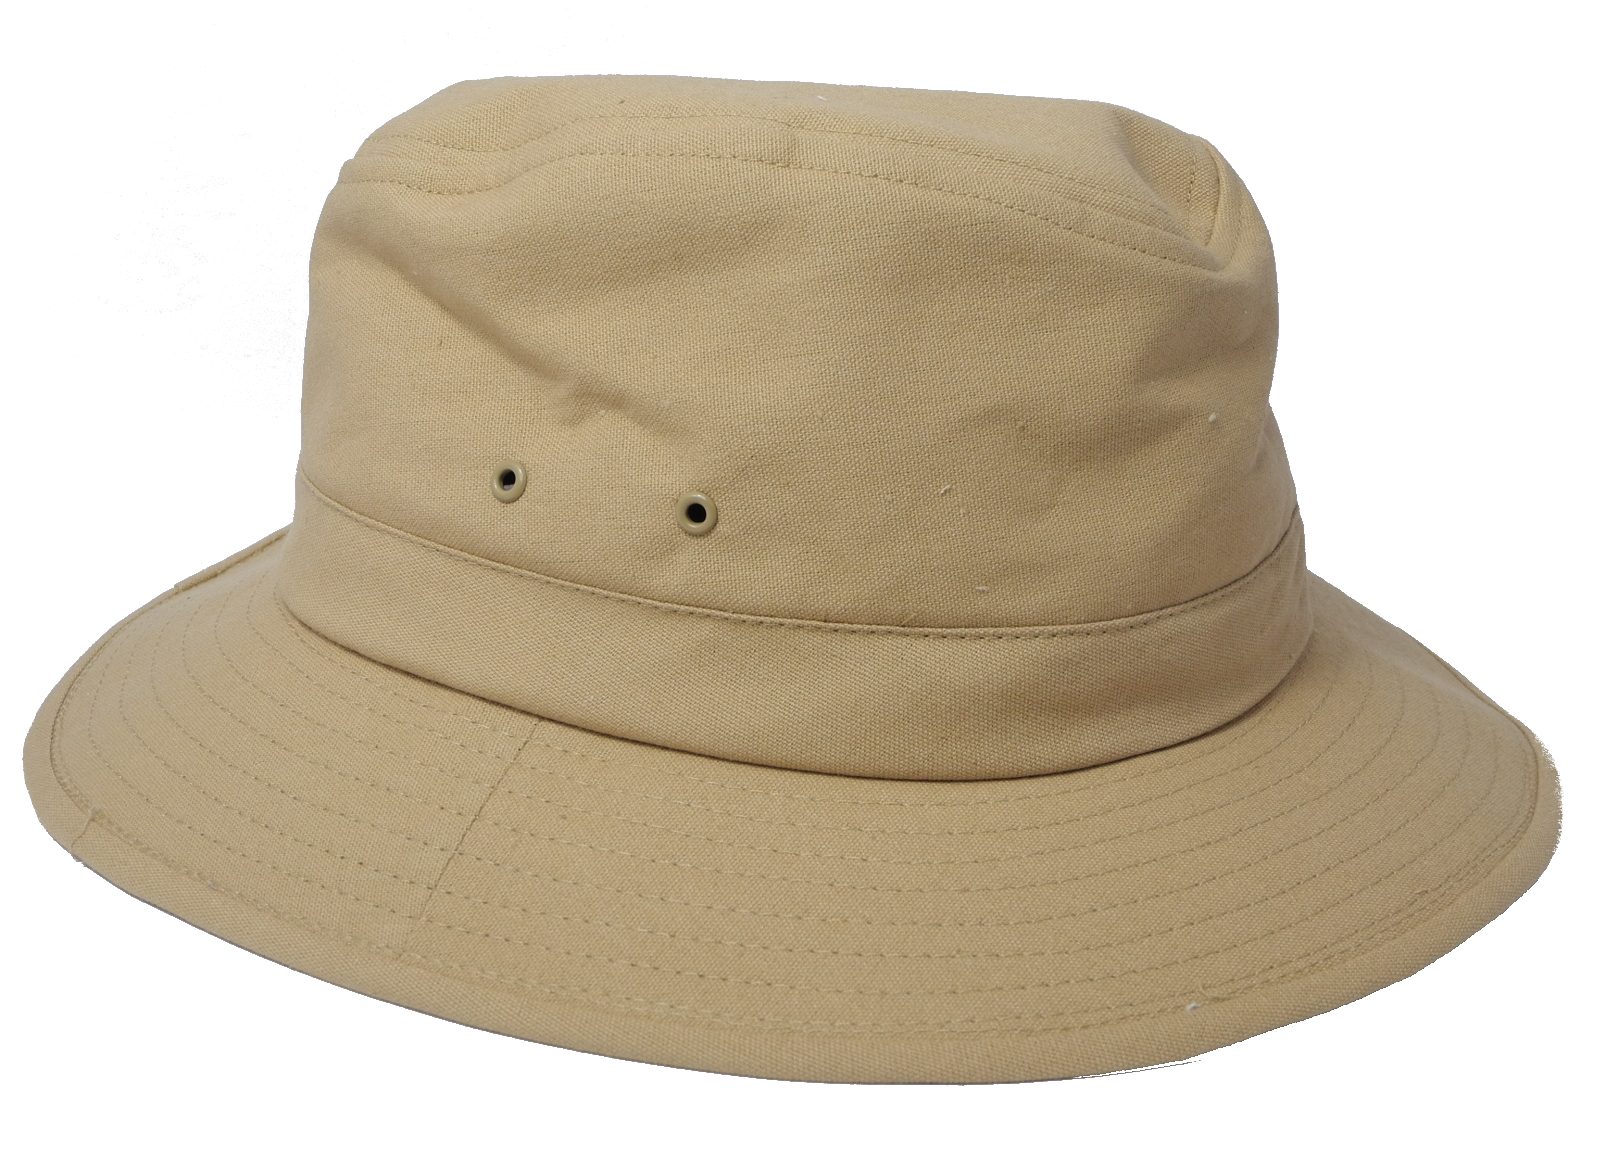 Free shipping & returns on women's sun hats at nichapie.ml Find a great selection of straw hats, raffia hats & more in a variety of colors & brim styles. Skip navigation Free shipping.